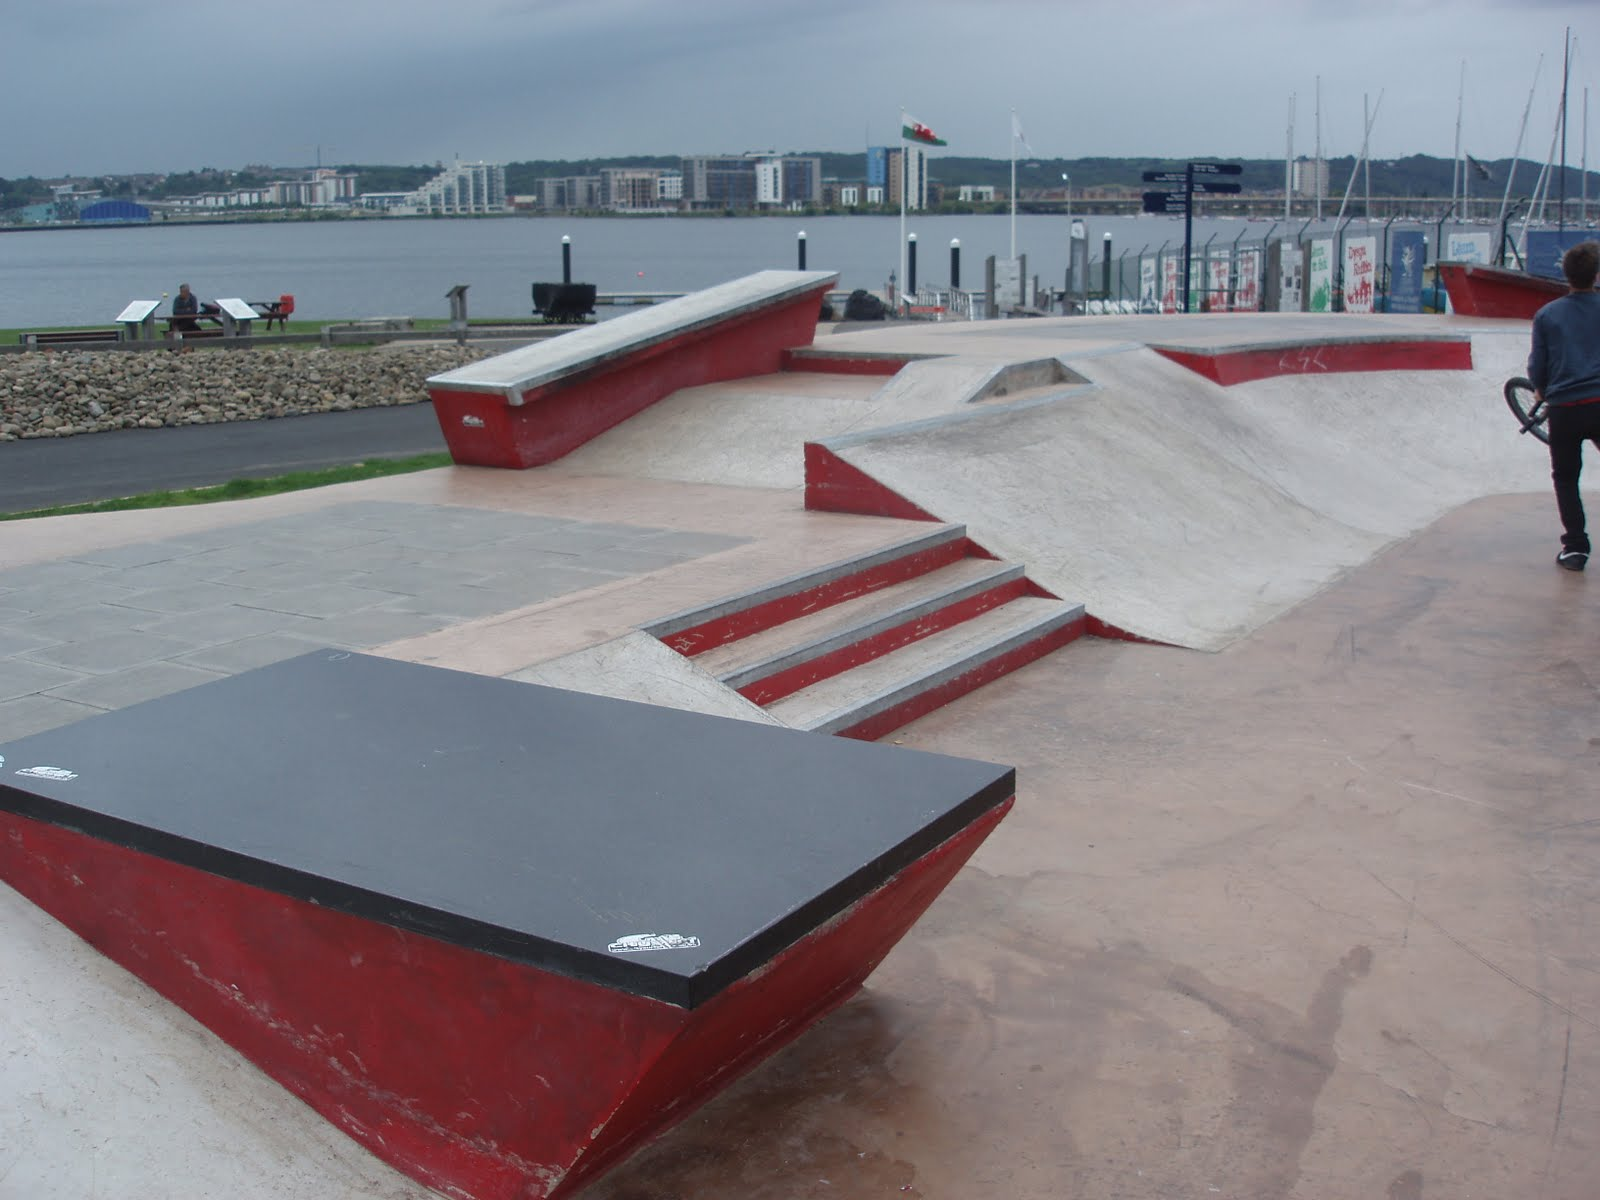 Peter Harries Cardiff Skate Plaza